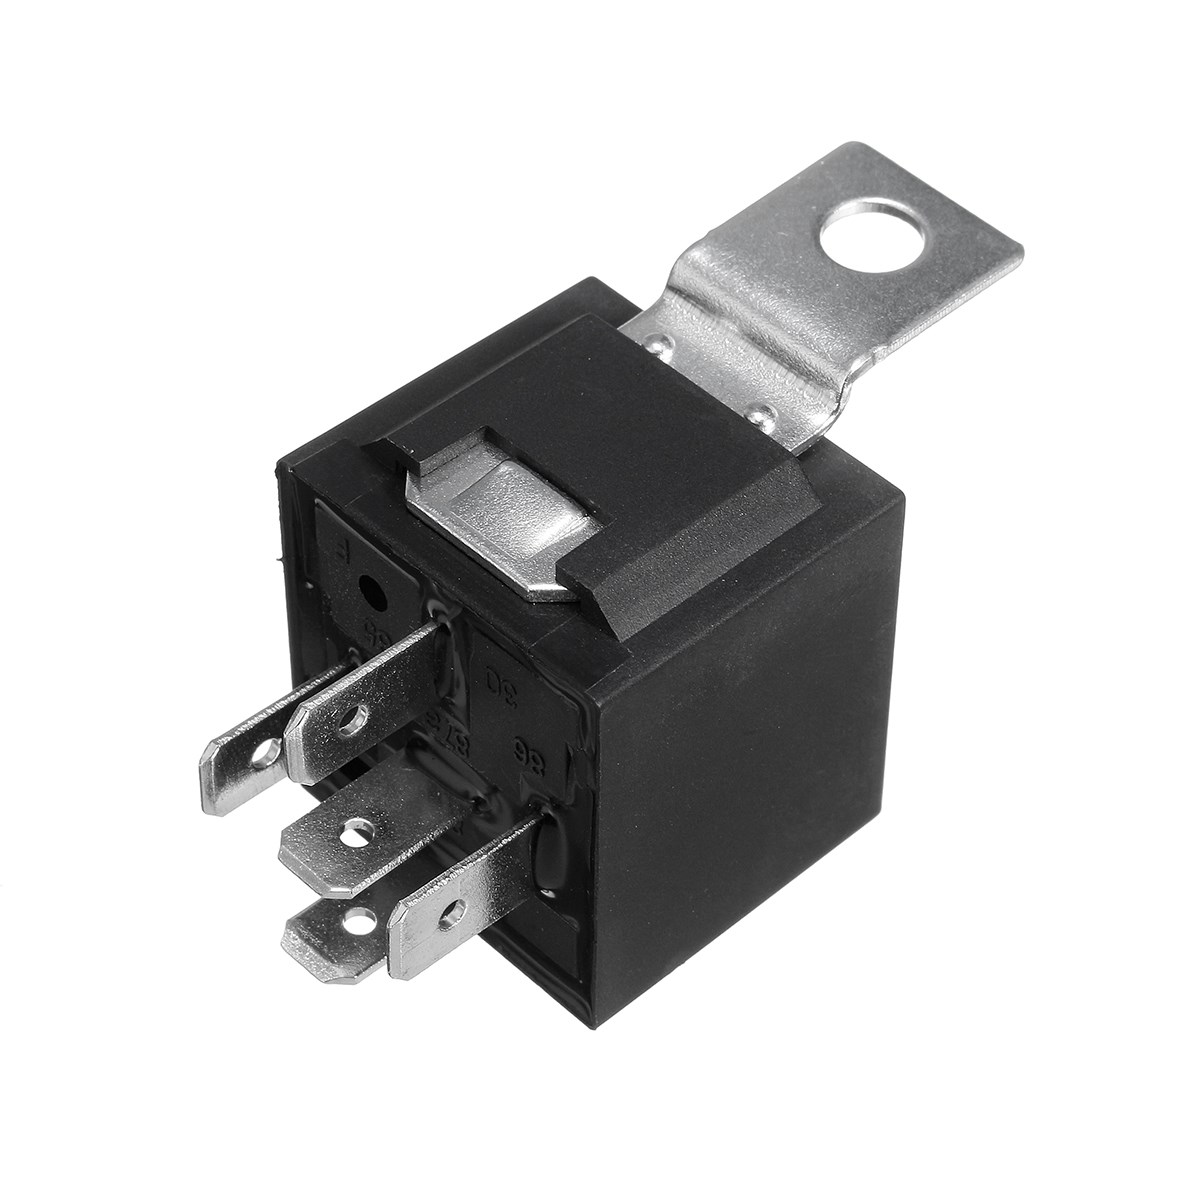 24v Relay 5 Pin Car Automotive 20a 30a Changeover Ry8 Detachable How To Wire A Prong Bracket Resistor In Switches Relays From Automobiles Motorcycles On